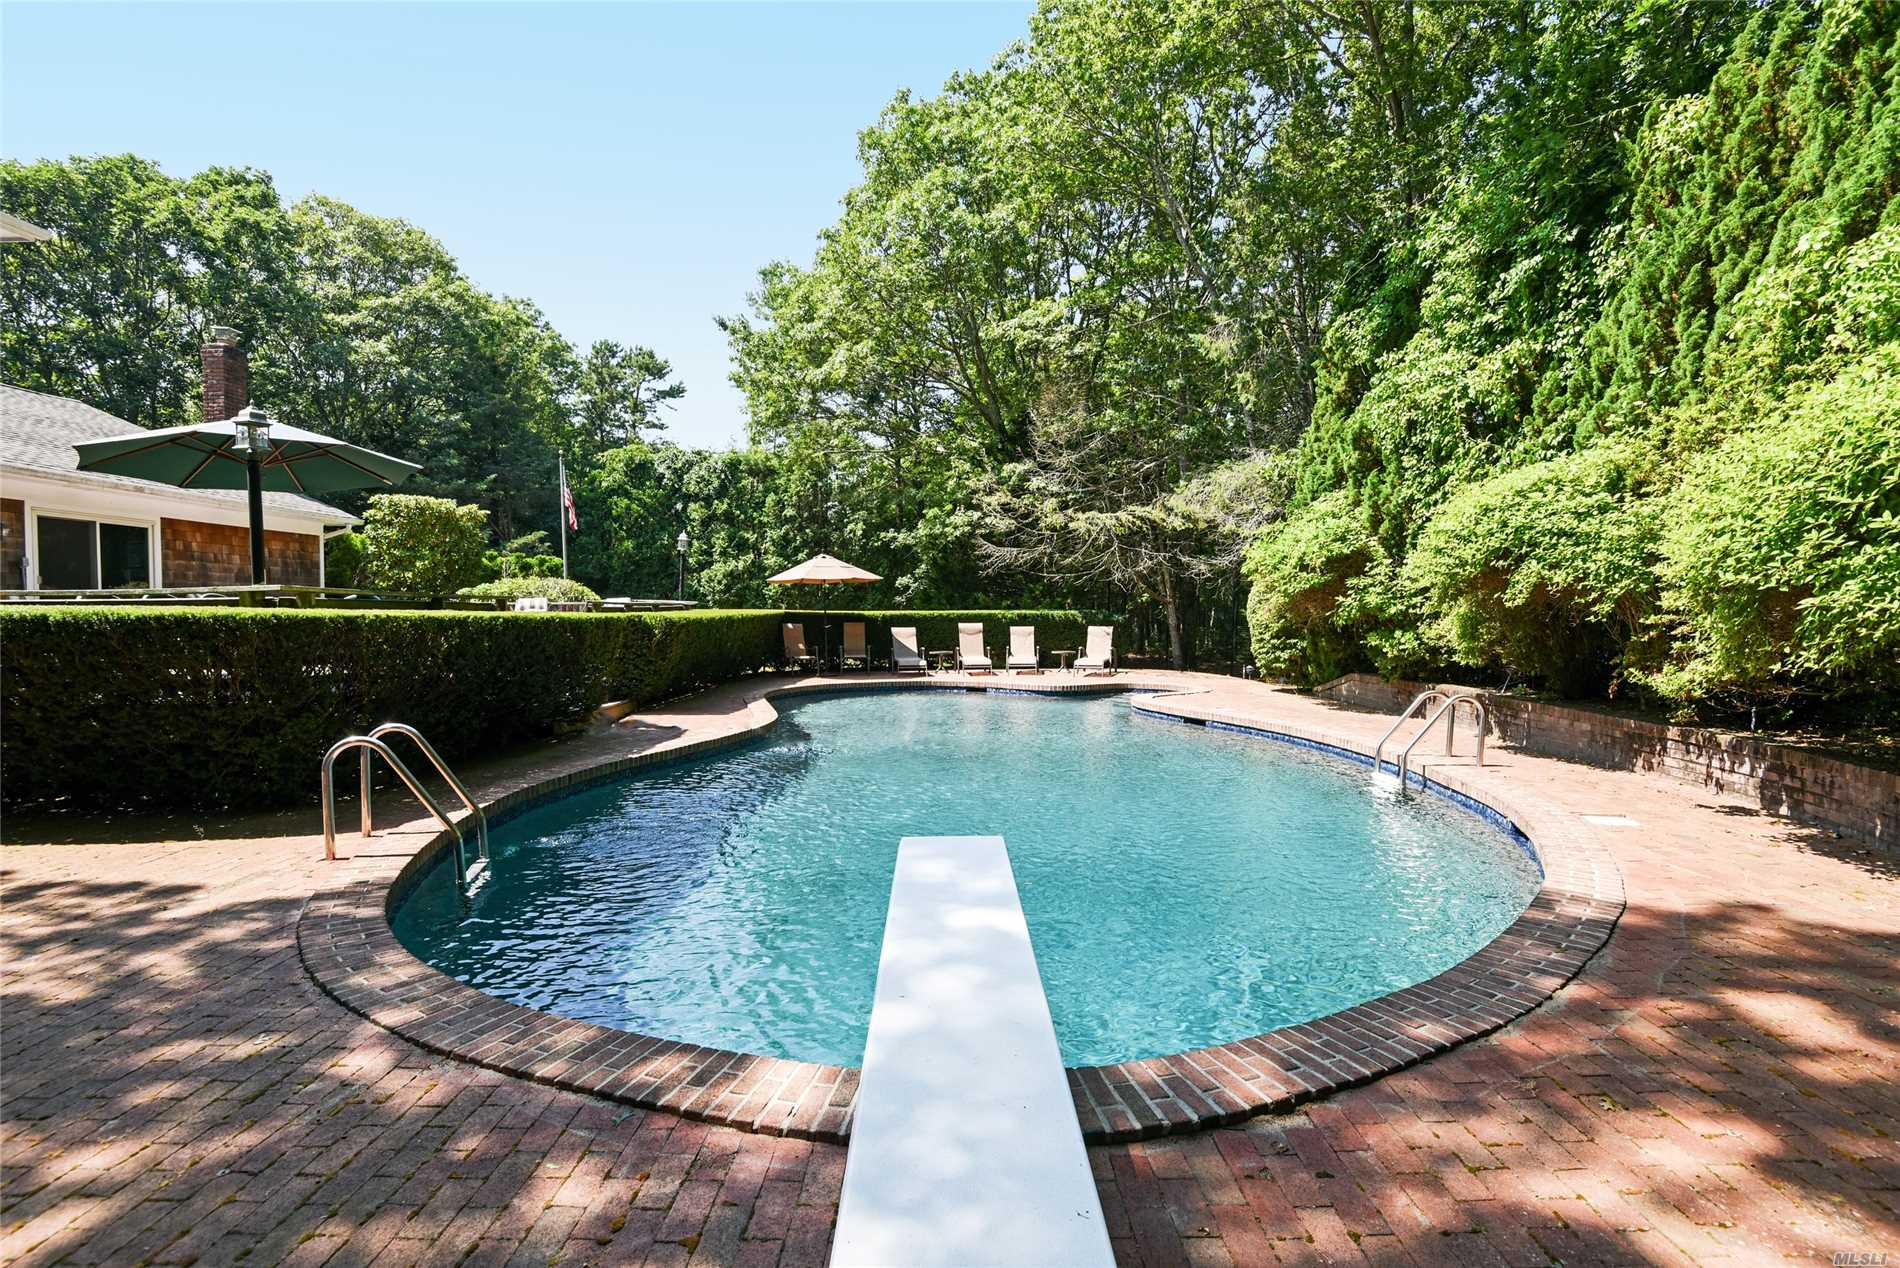 Come See This Neat As A Pin Four Bedroom Two And Half Bathroom House On A Full Acre In The Wonderful Village Of Quogue. There Is An Eat In Kitchen, Dining Area, Living Room, Den, Two Car Garage, And A Finished Basement The Back Yard Is Very Private With A Large Deck And Fabulous Gunite Pool.